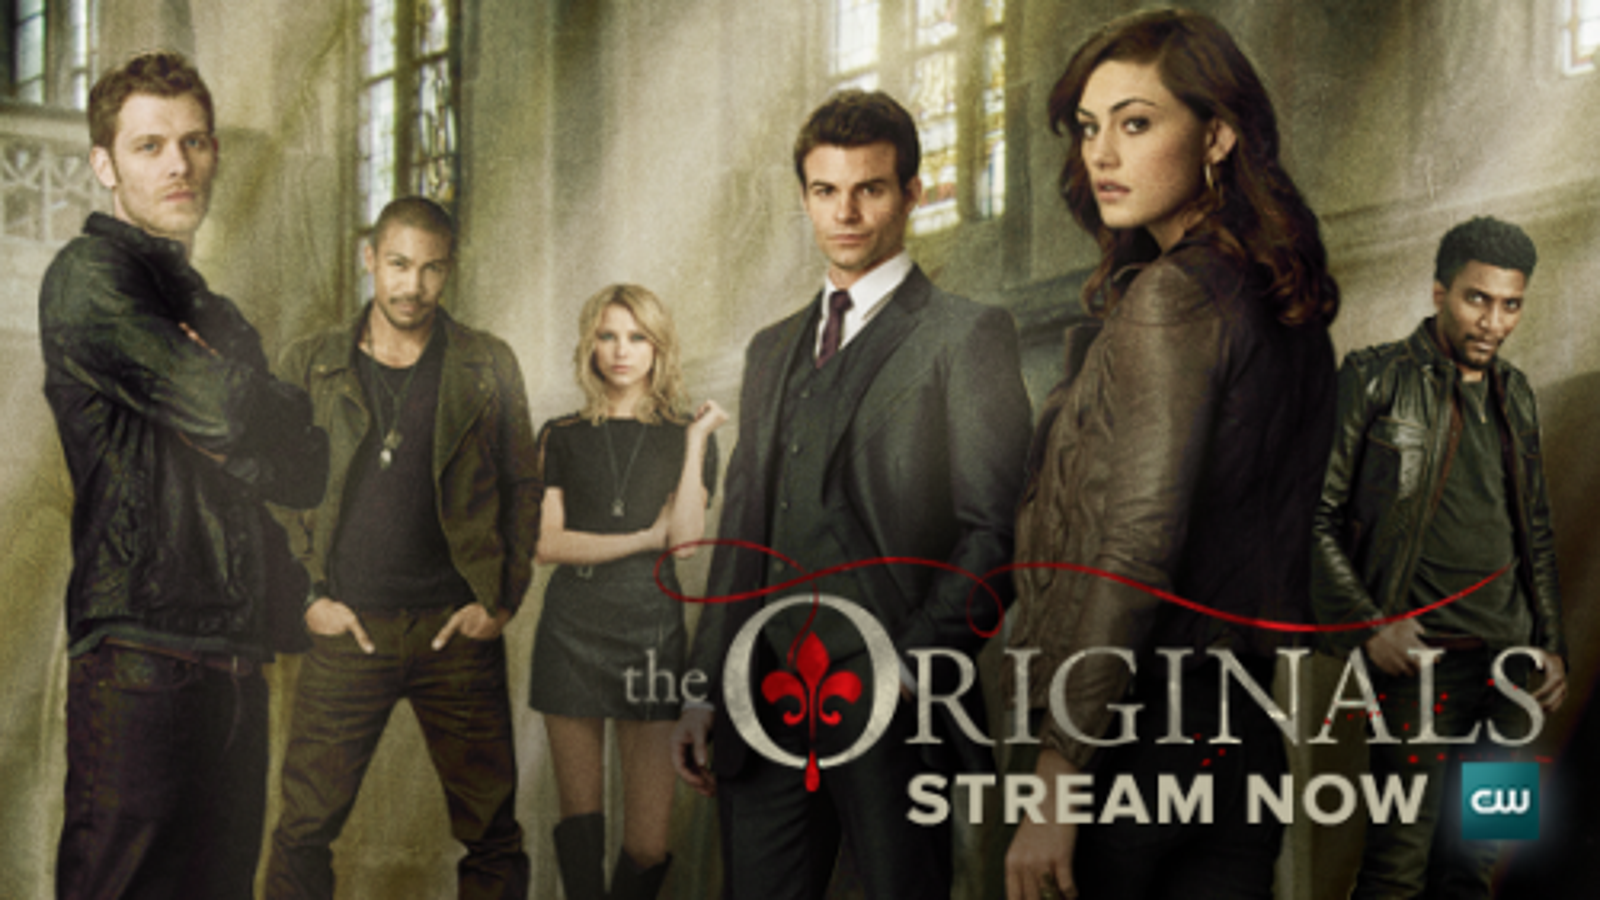 The Originals approaches its endgame and I am intrigued